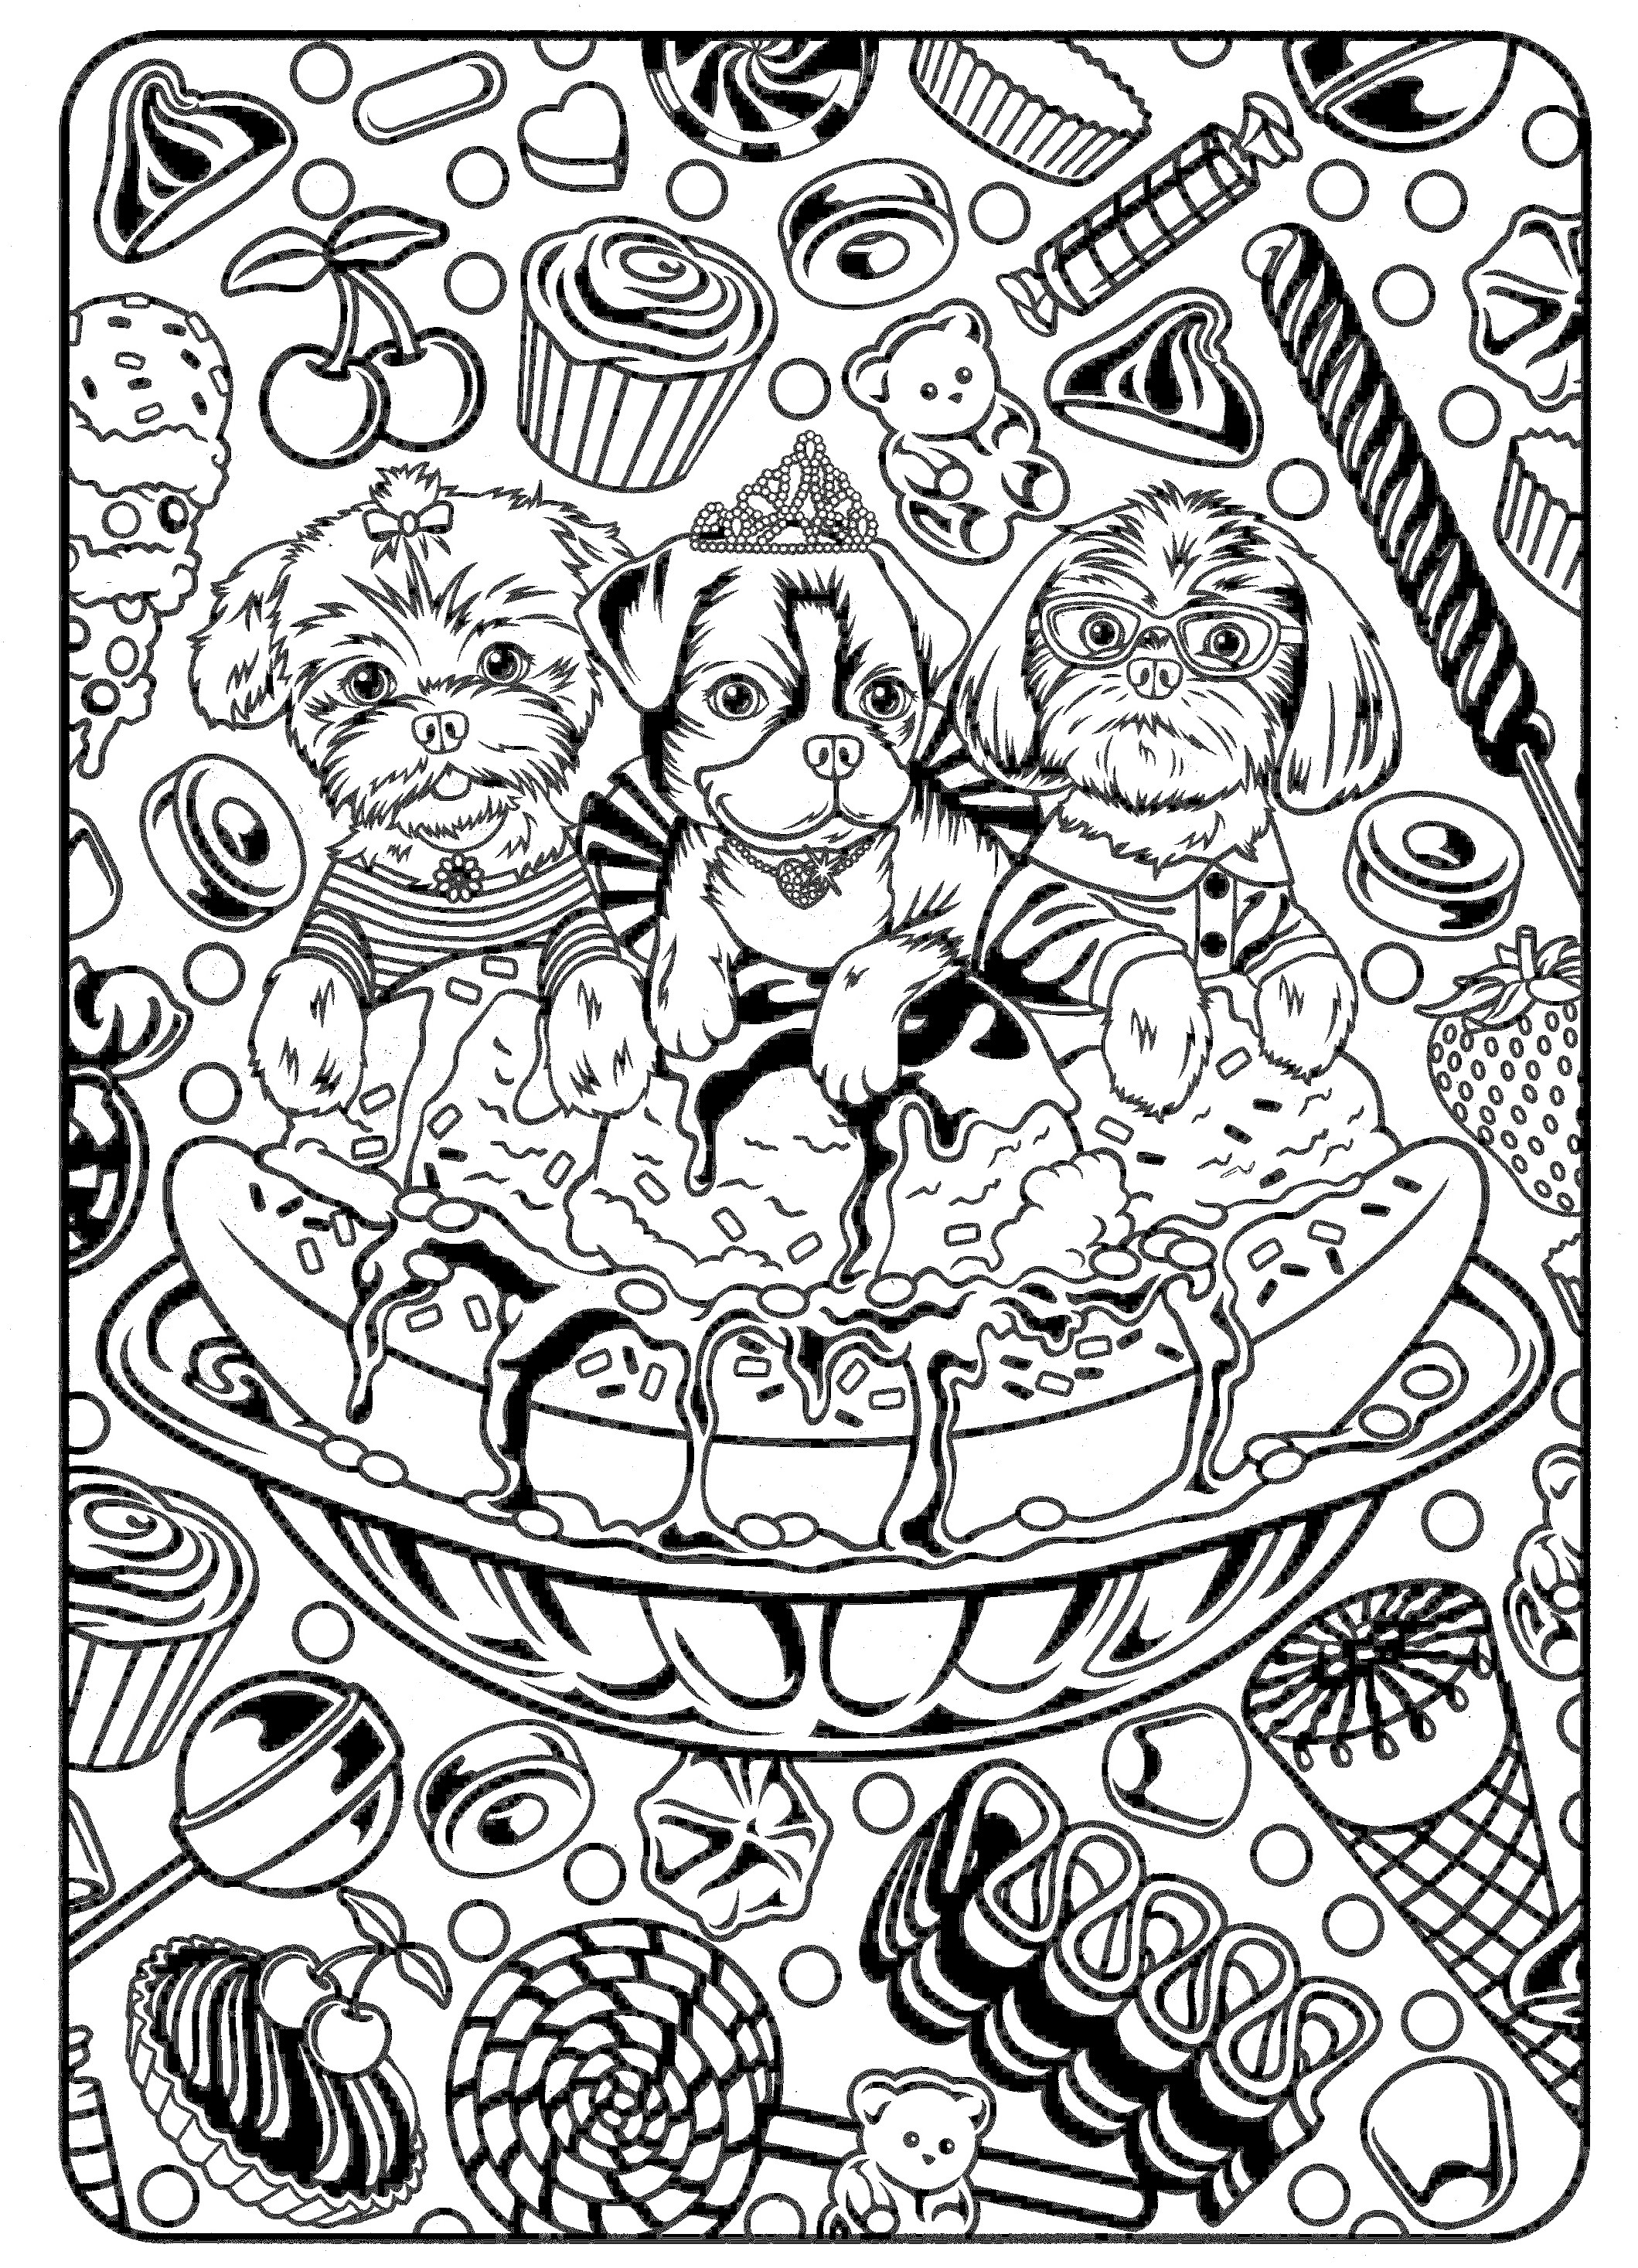 coloring pictures for kids kids printable flamingo coloring page the graphics fairy for pictures coloring kids